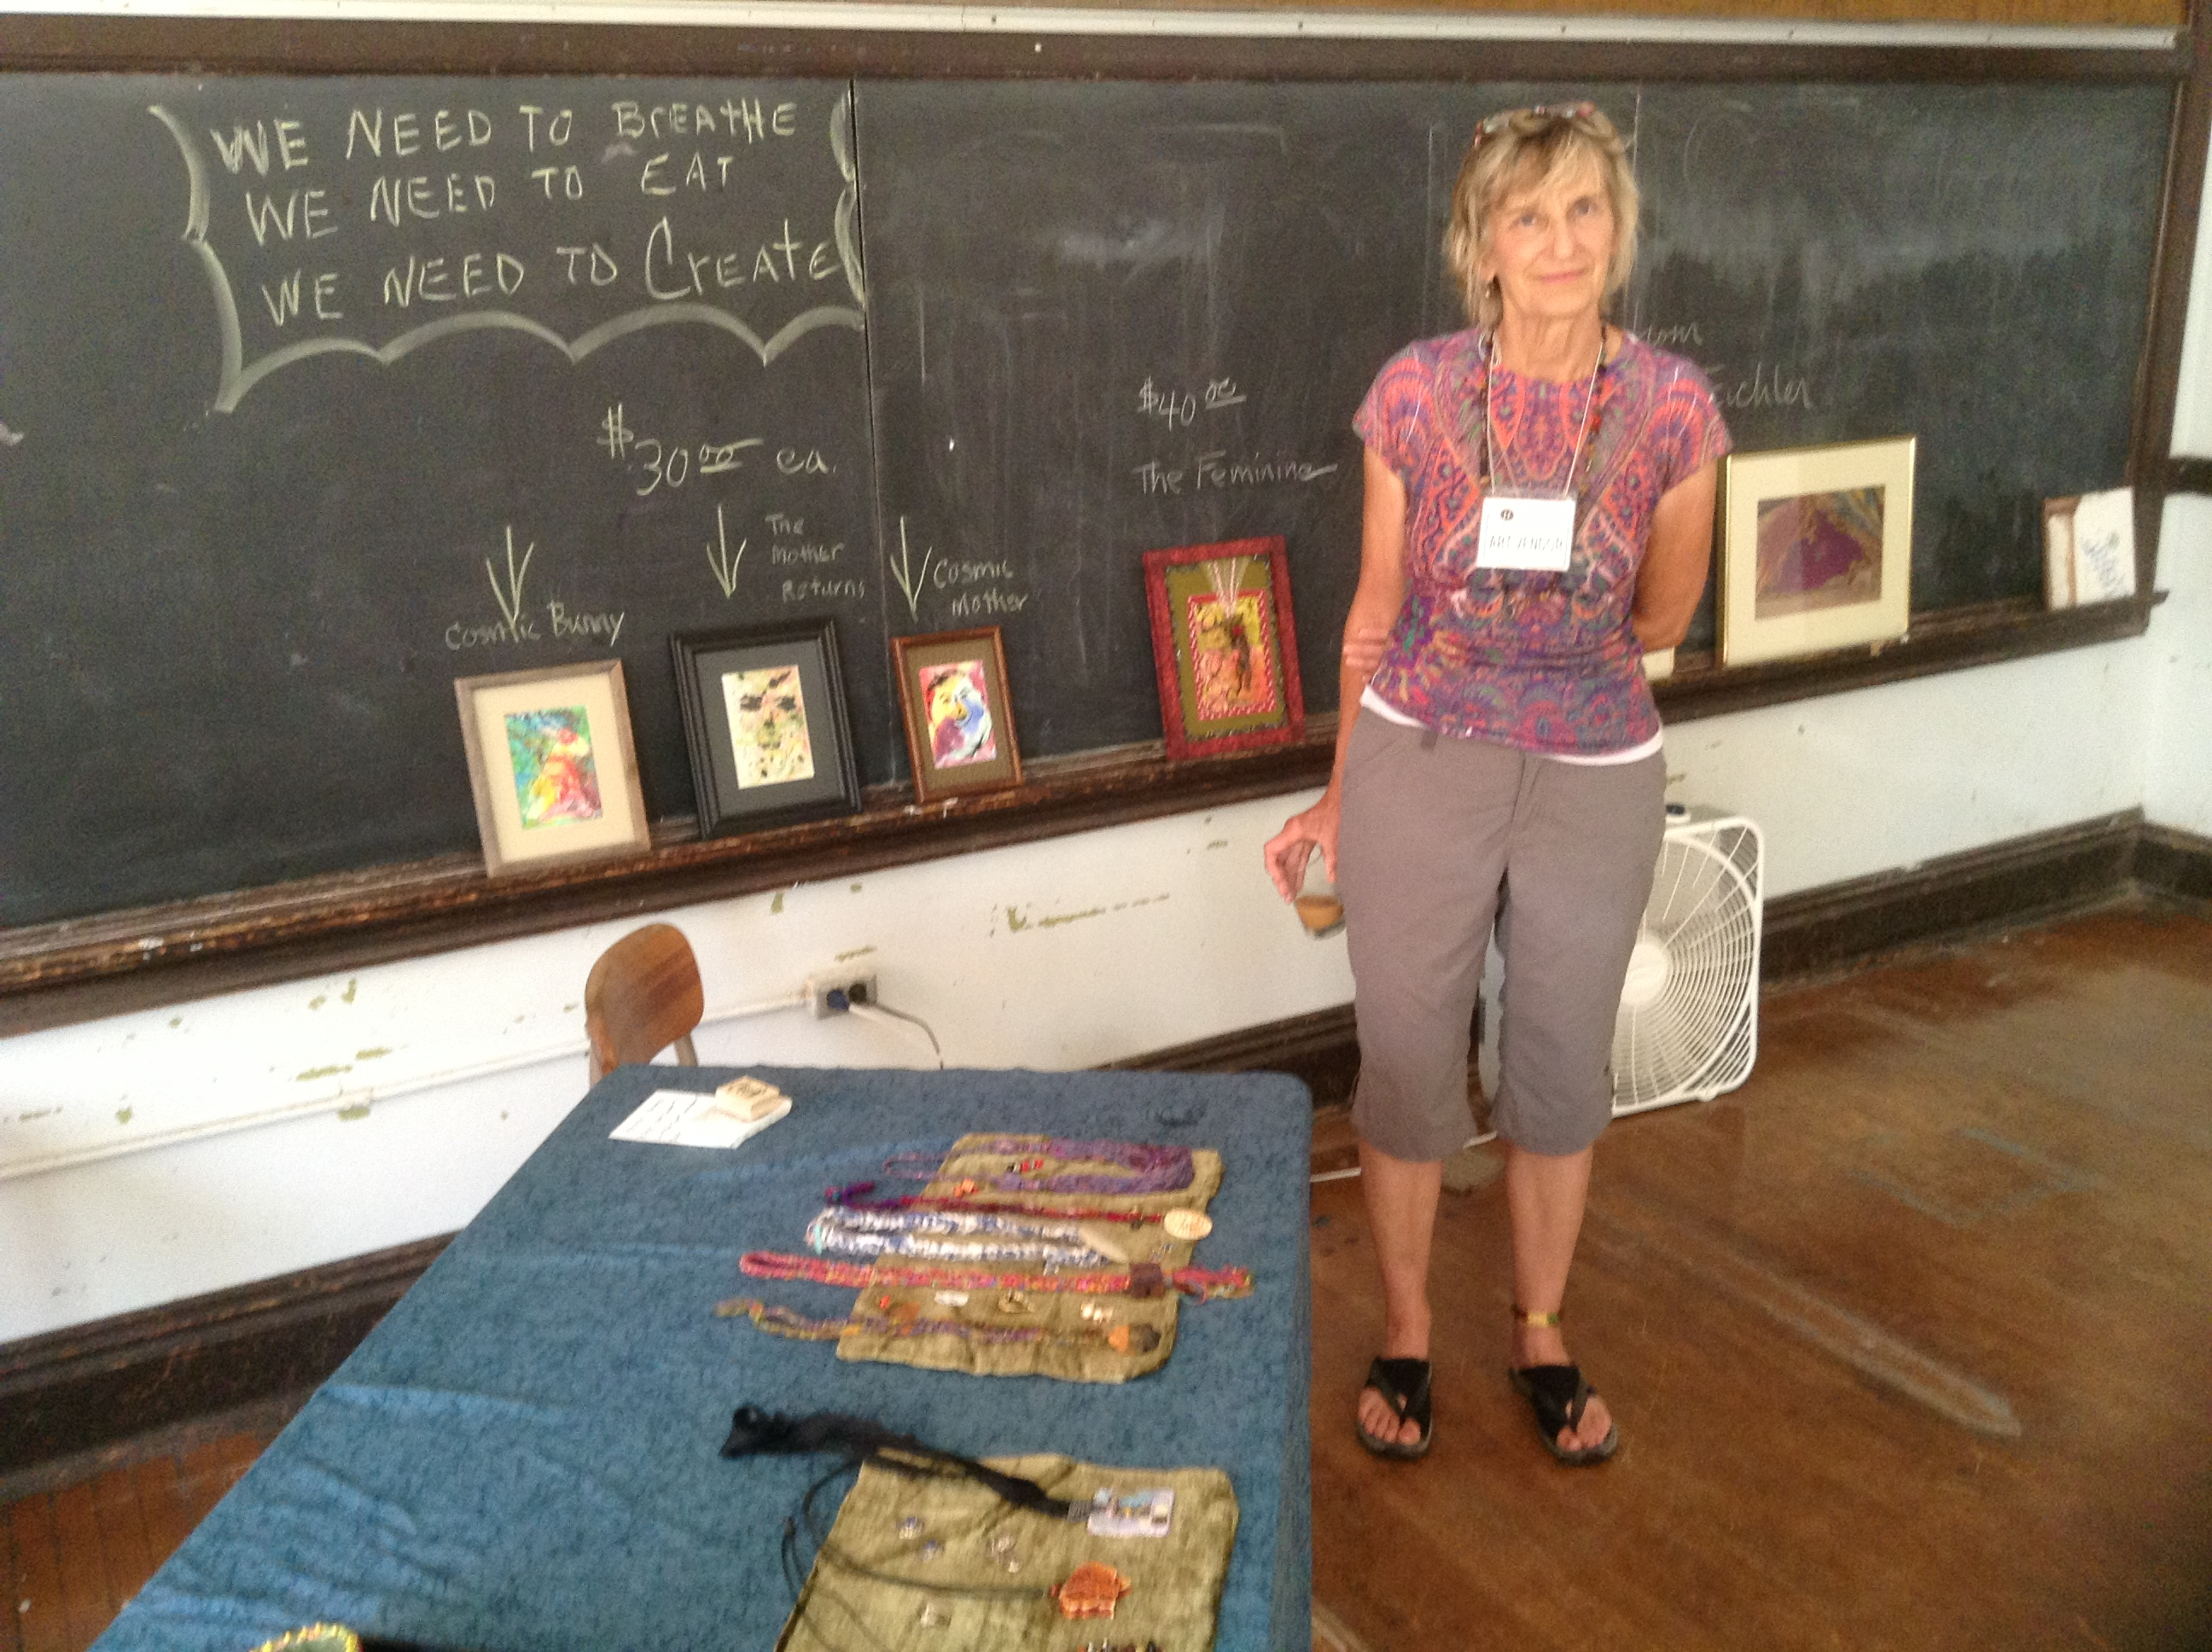 Gail Walters' studio at Huss